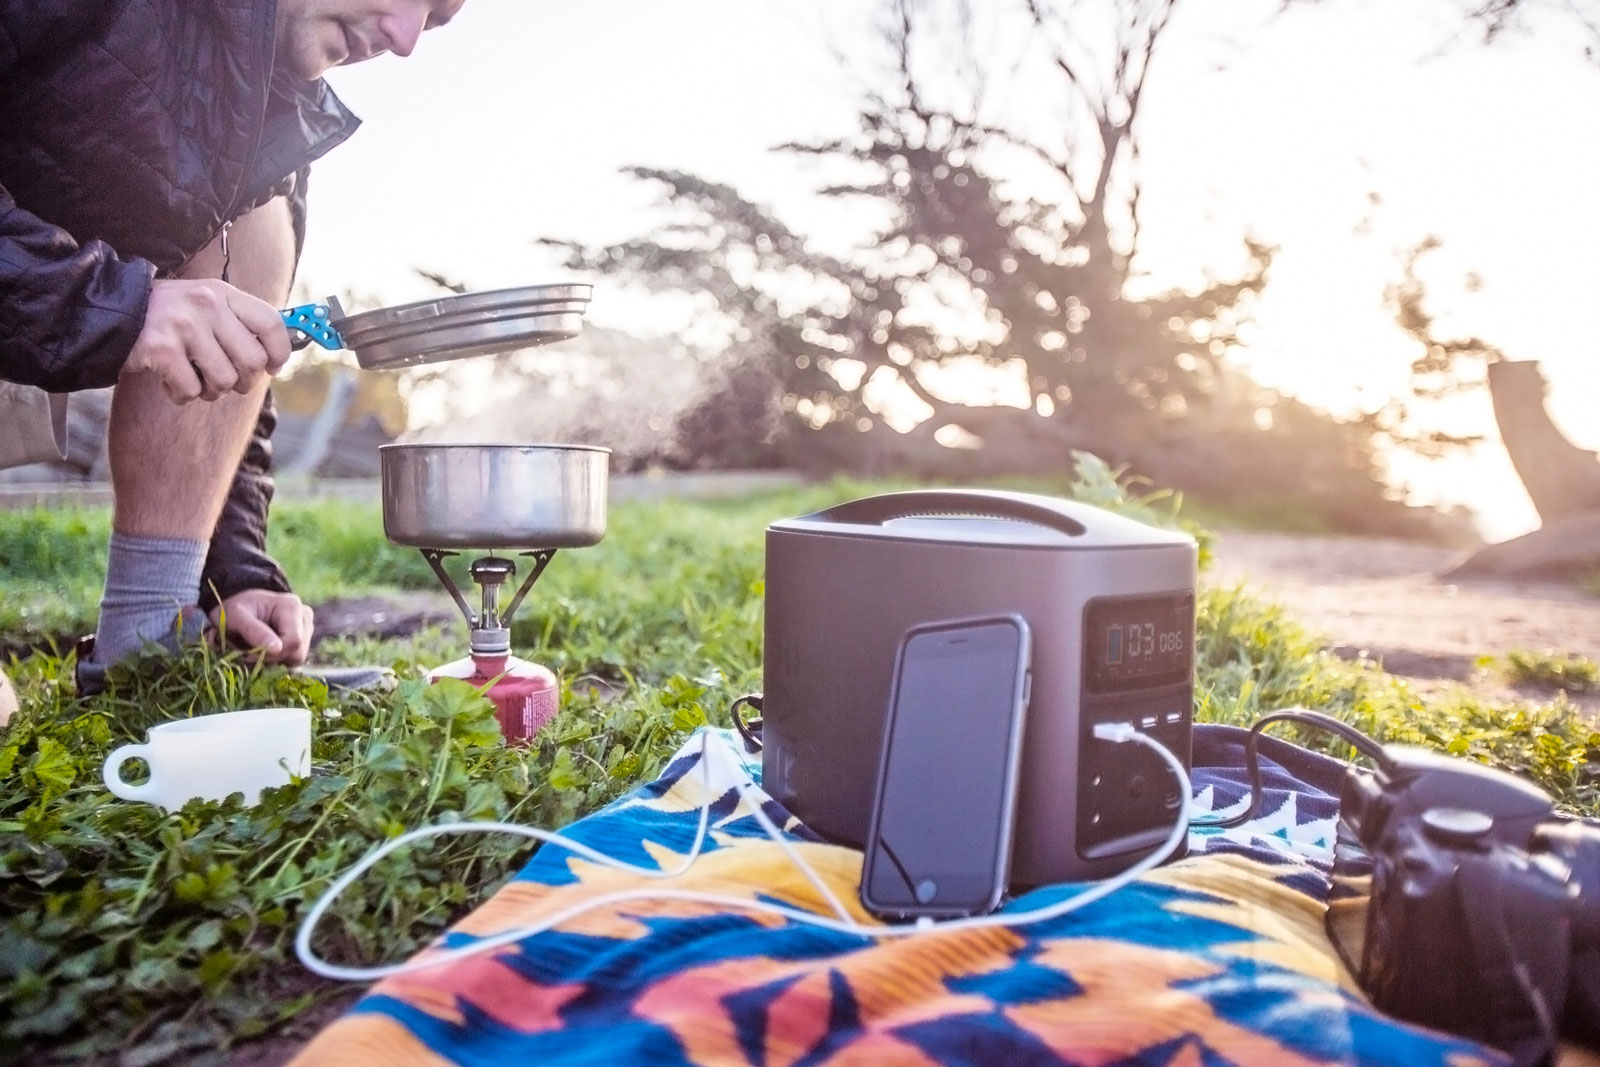 13_river_lifestyle_camping-1600